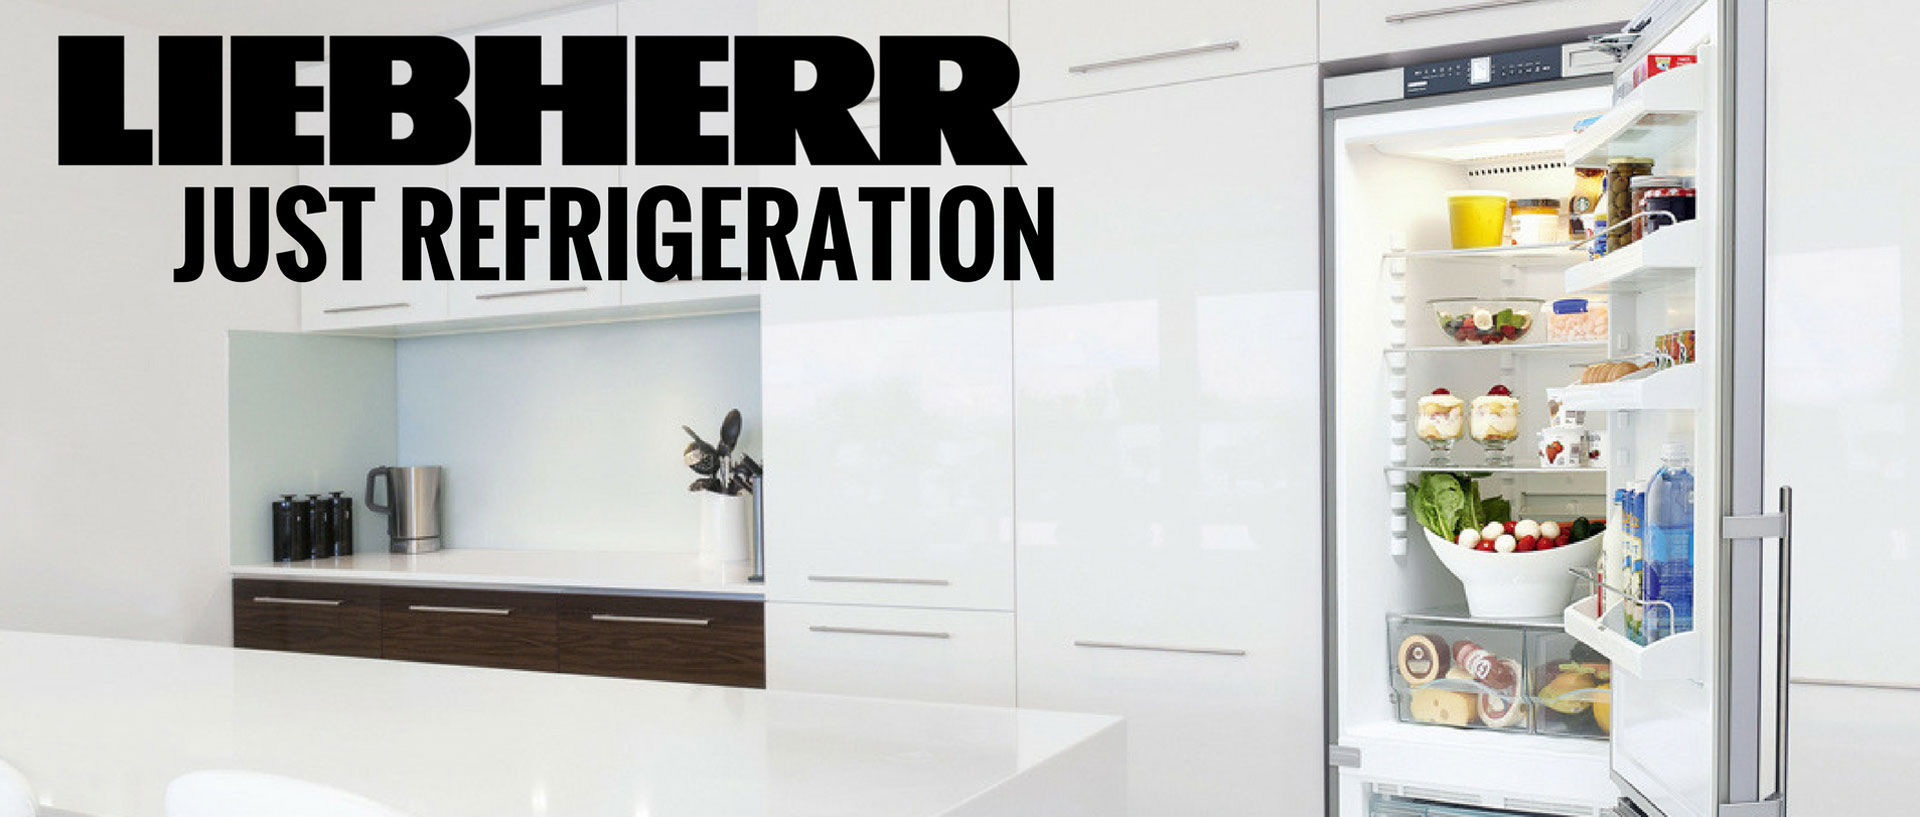 Liebherr - Just Refrigeration